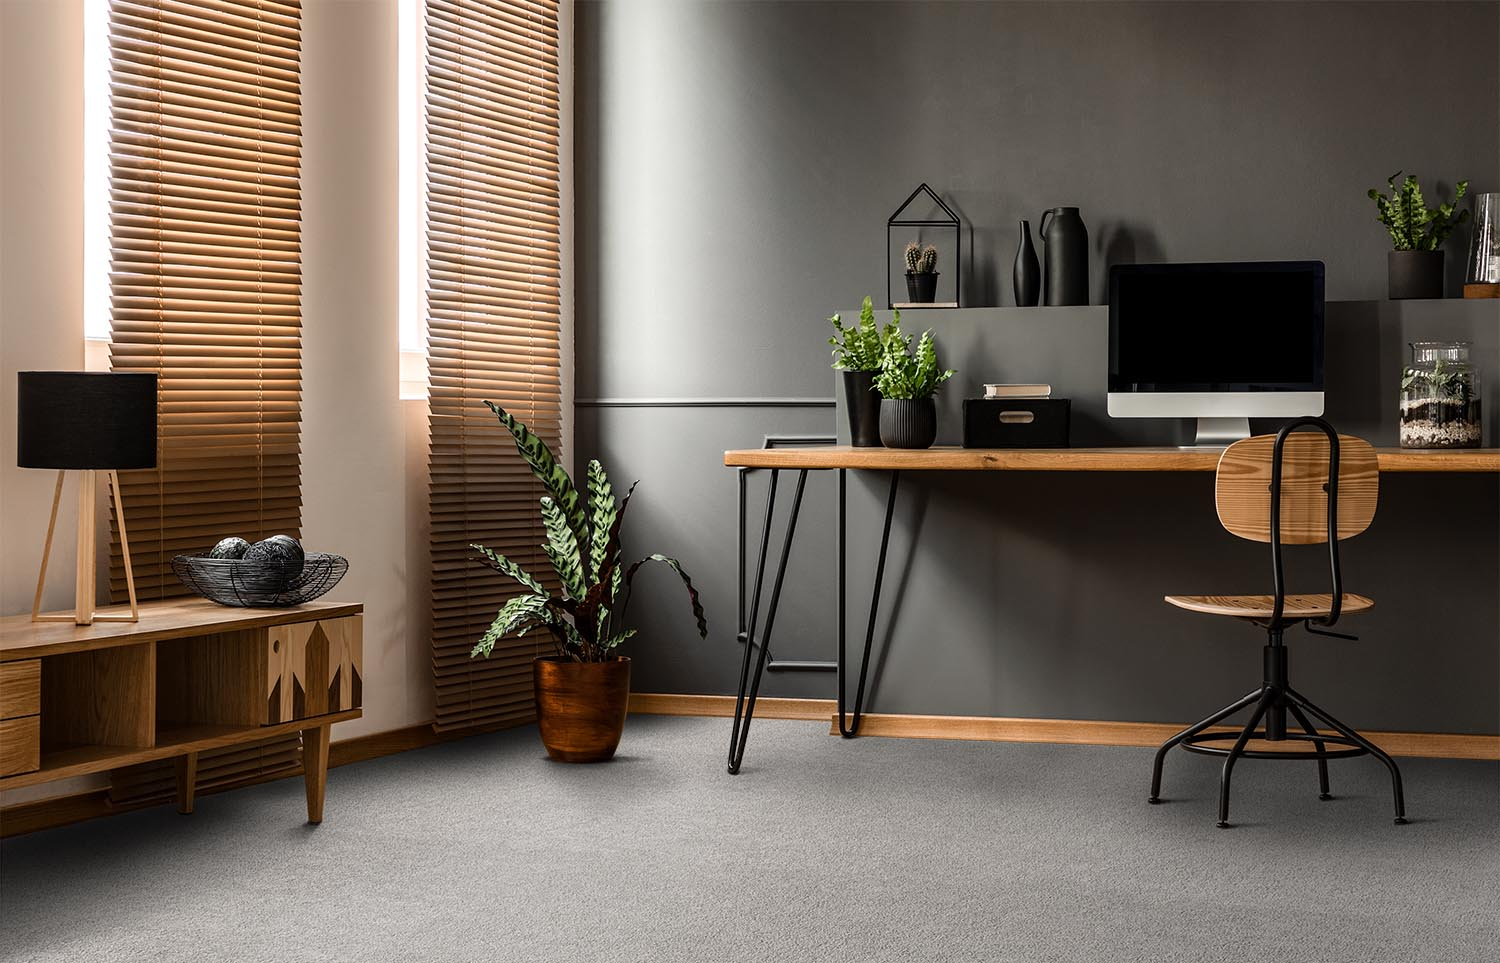 Softology - S201 - Downy home office